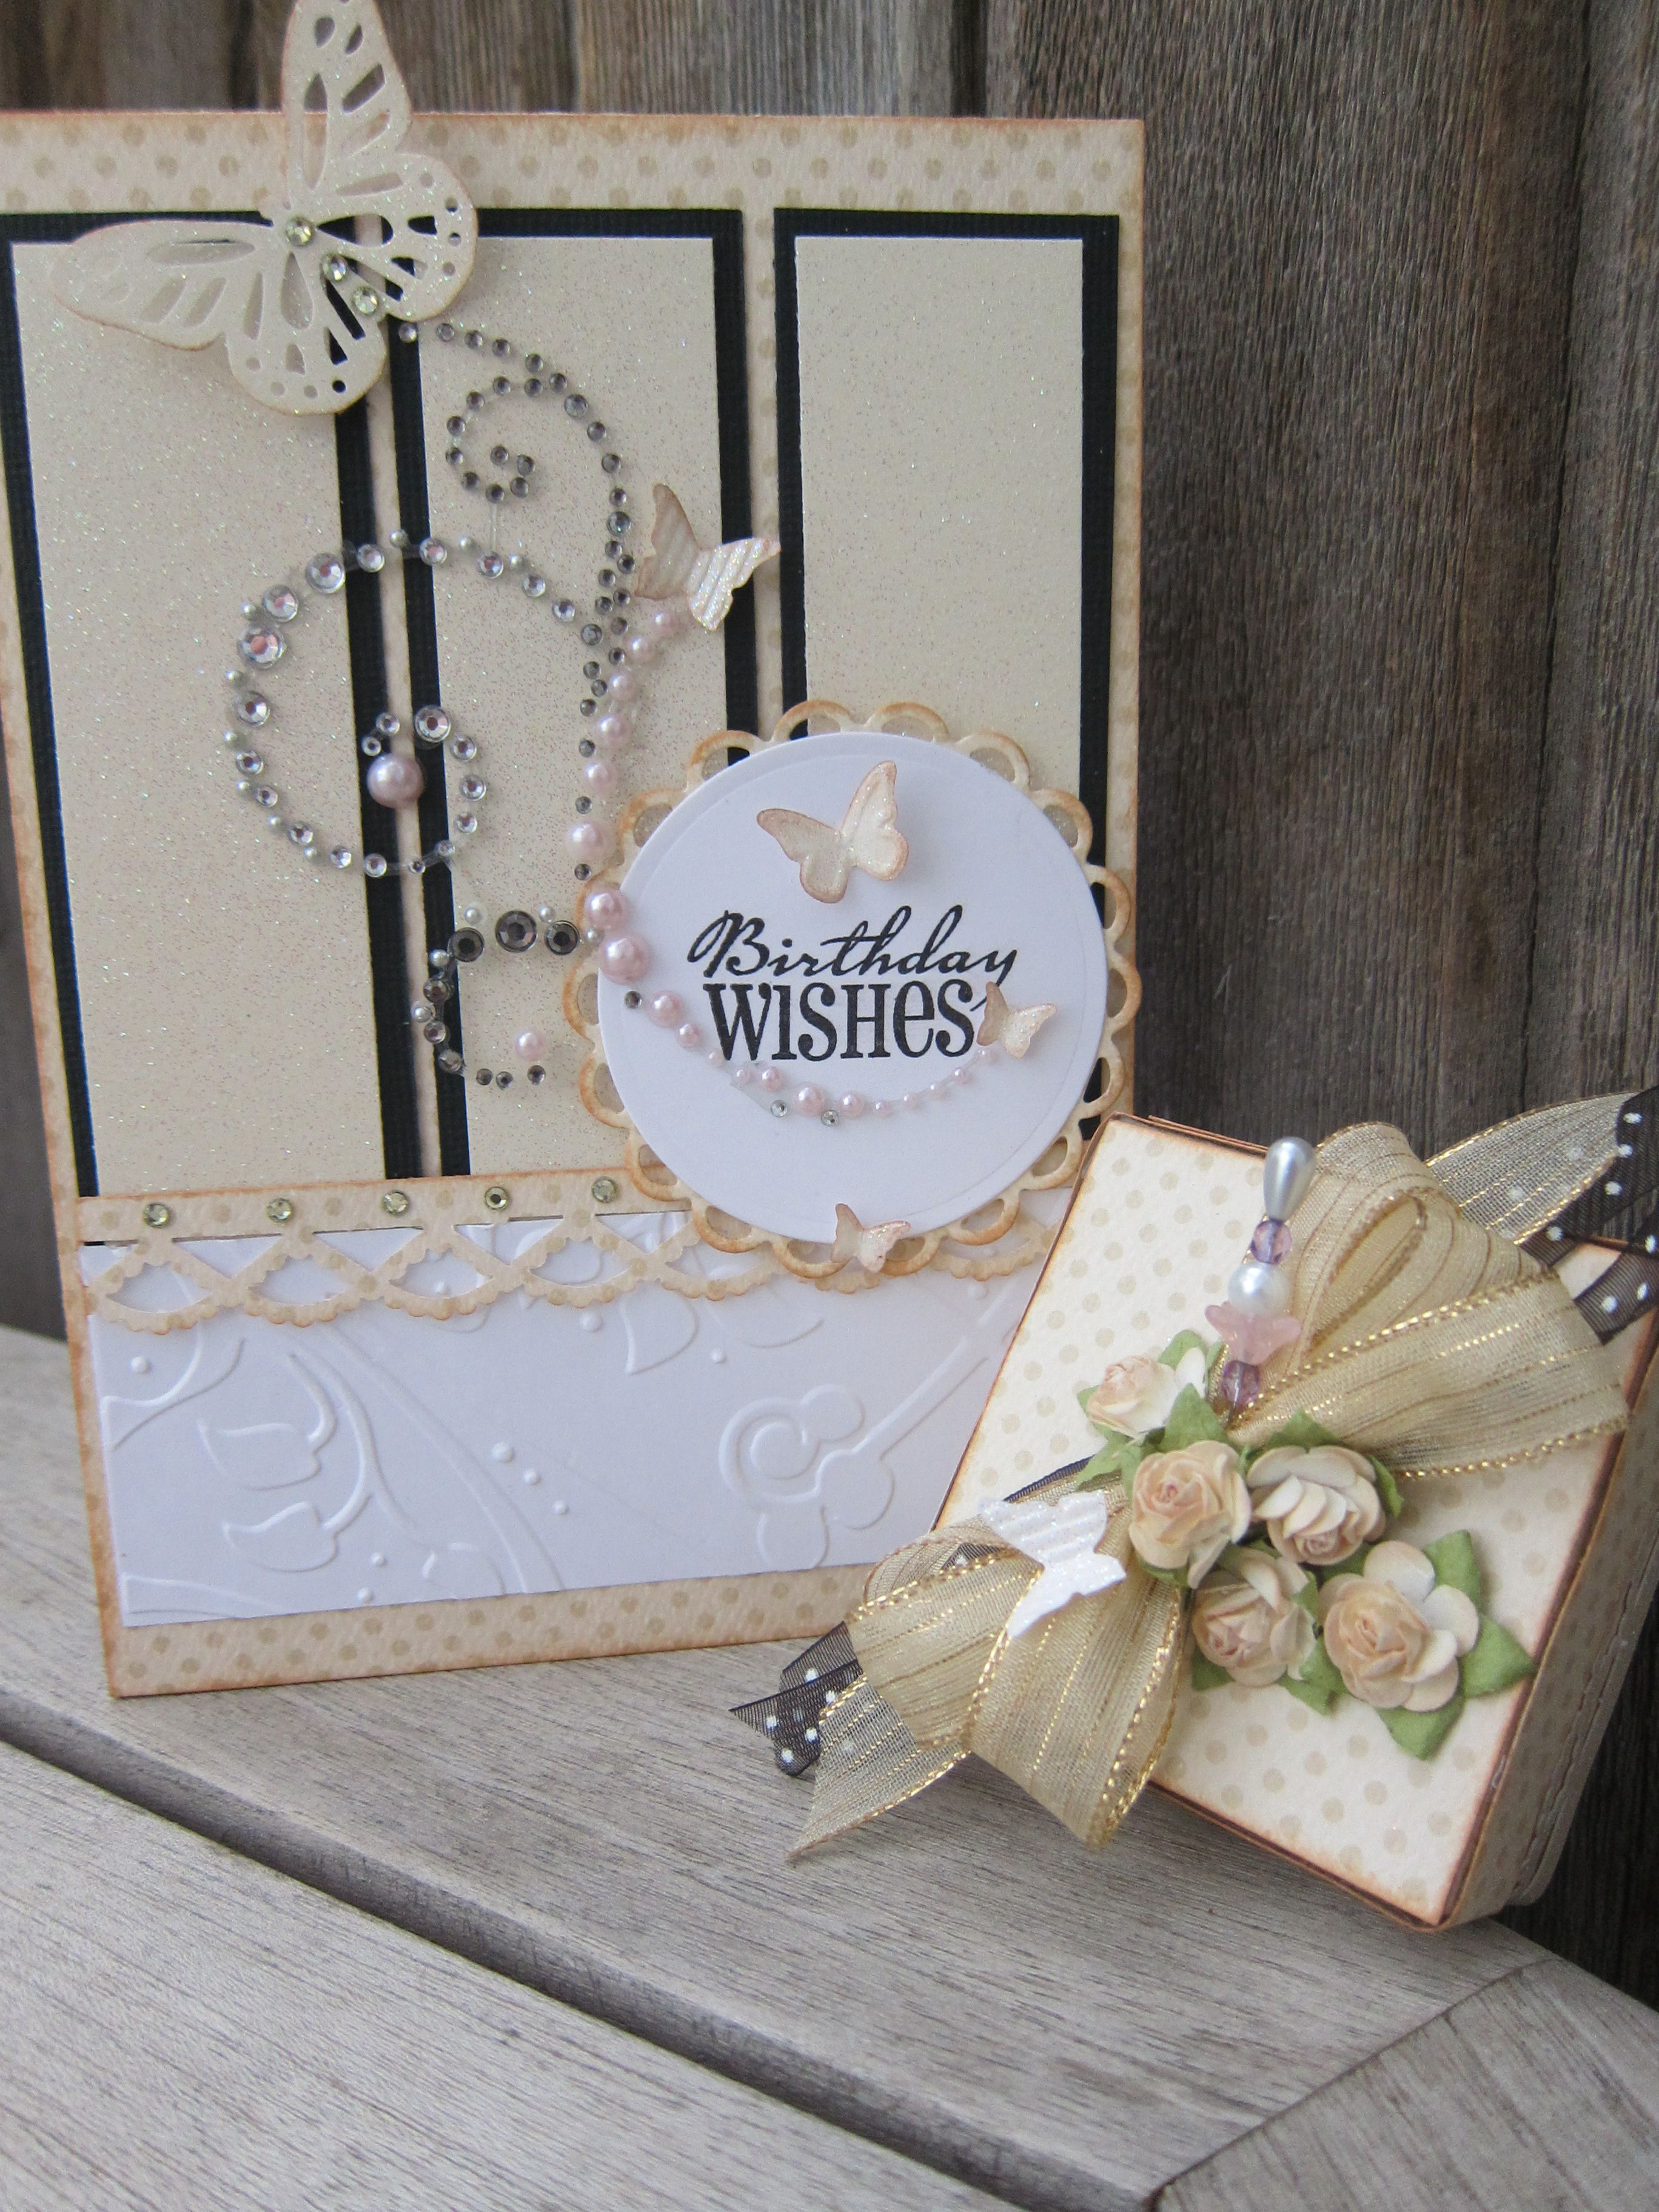 A special cardgift box for a 50th birthday for a special